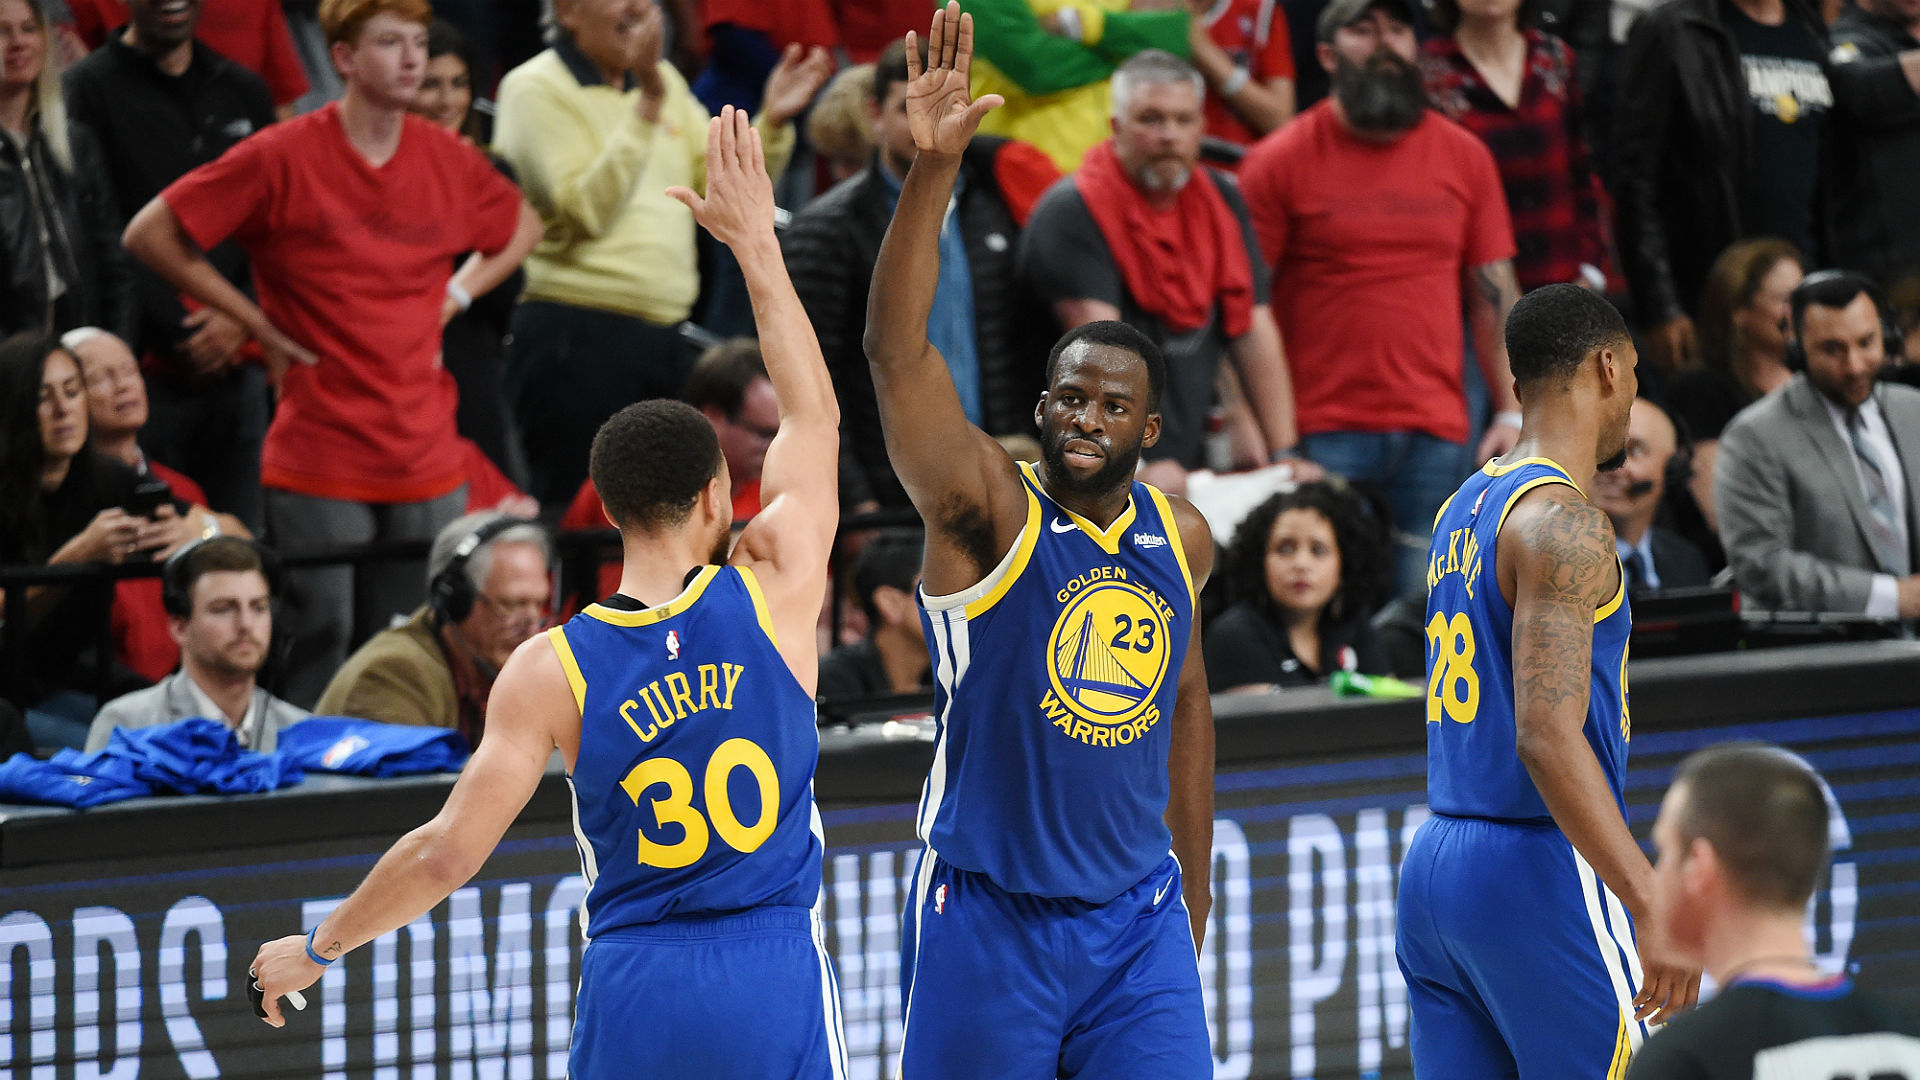 NBA Finals 2019: 3 bold predictions for the championship series